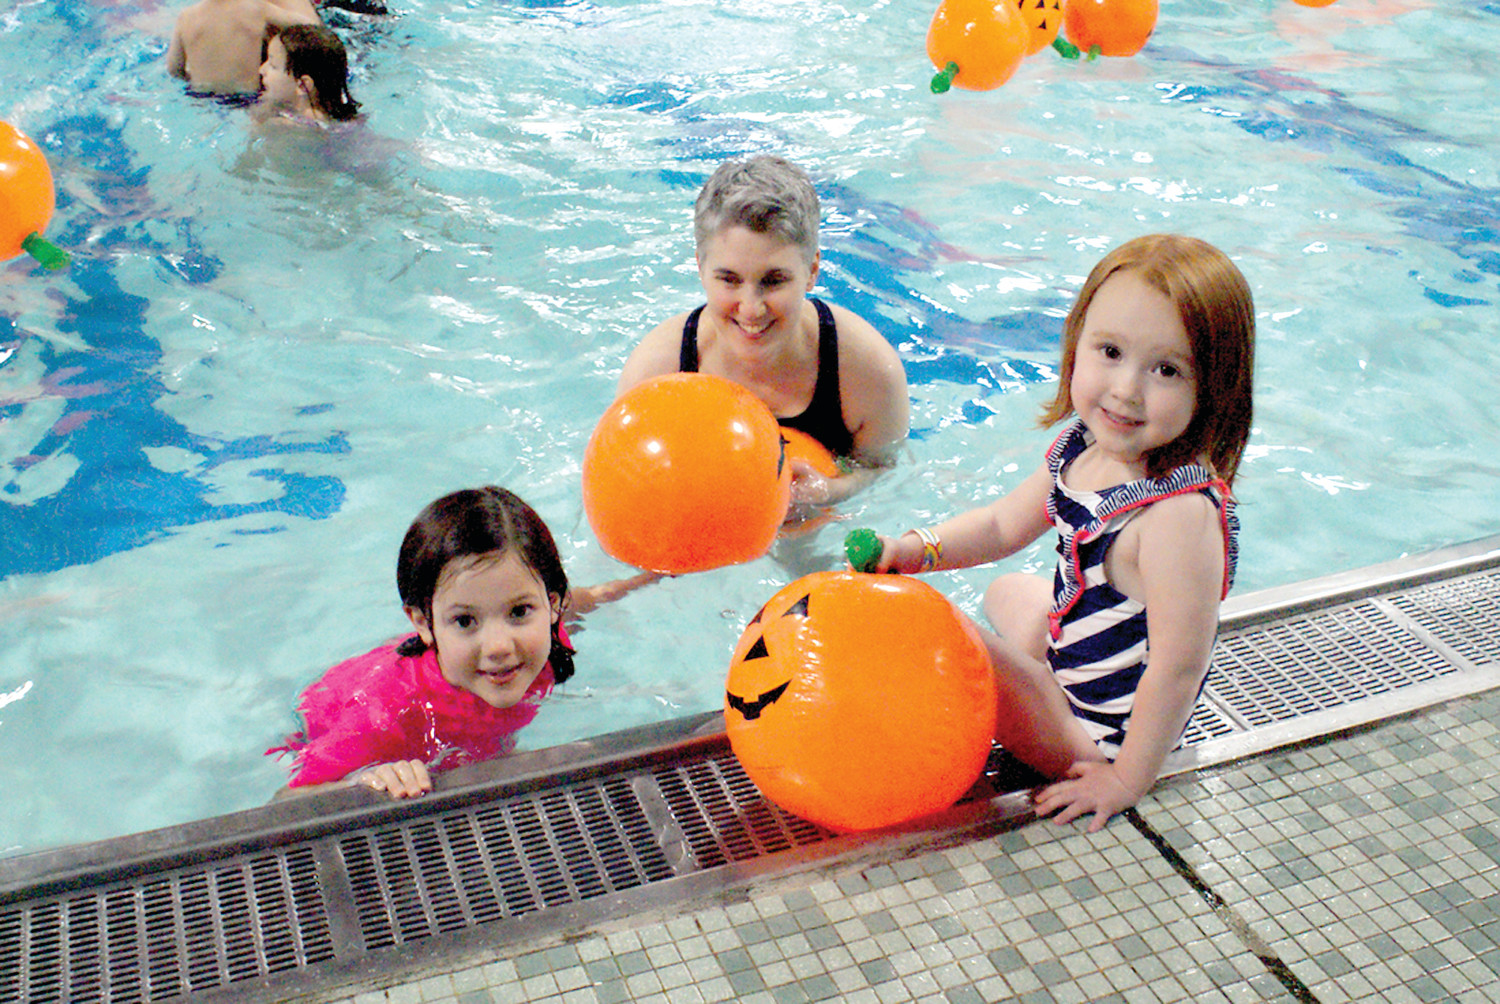 PICKING PUMPKINS: Pictured are Reese, age 7 and Riley Burgess, age 4, enjoyed their time during Swim with the Pumpkins with their mother, Jennifer Kodis at the Cranston YMCA.